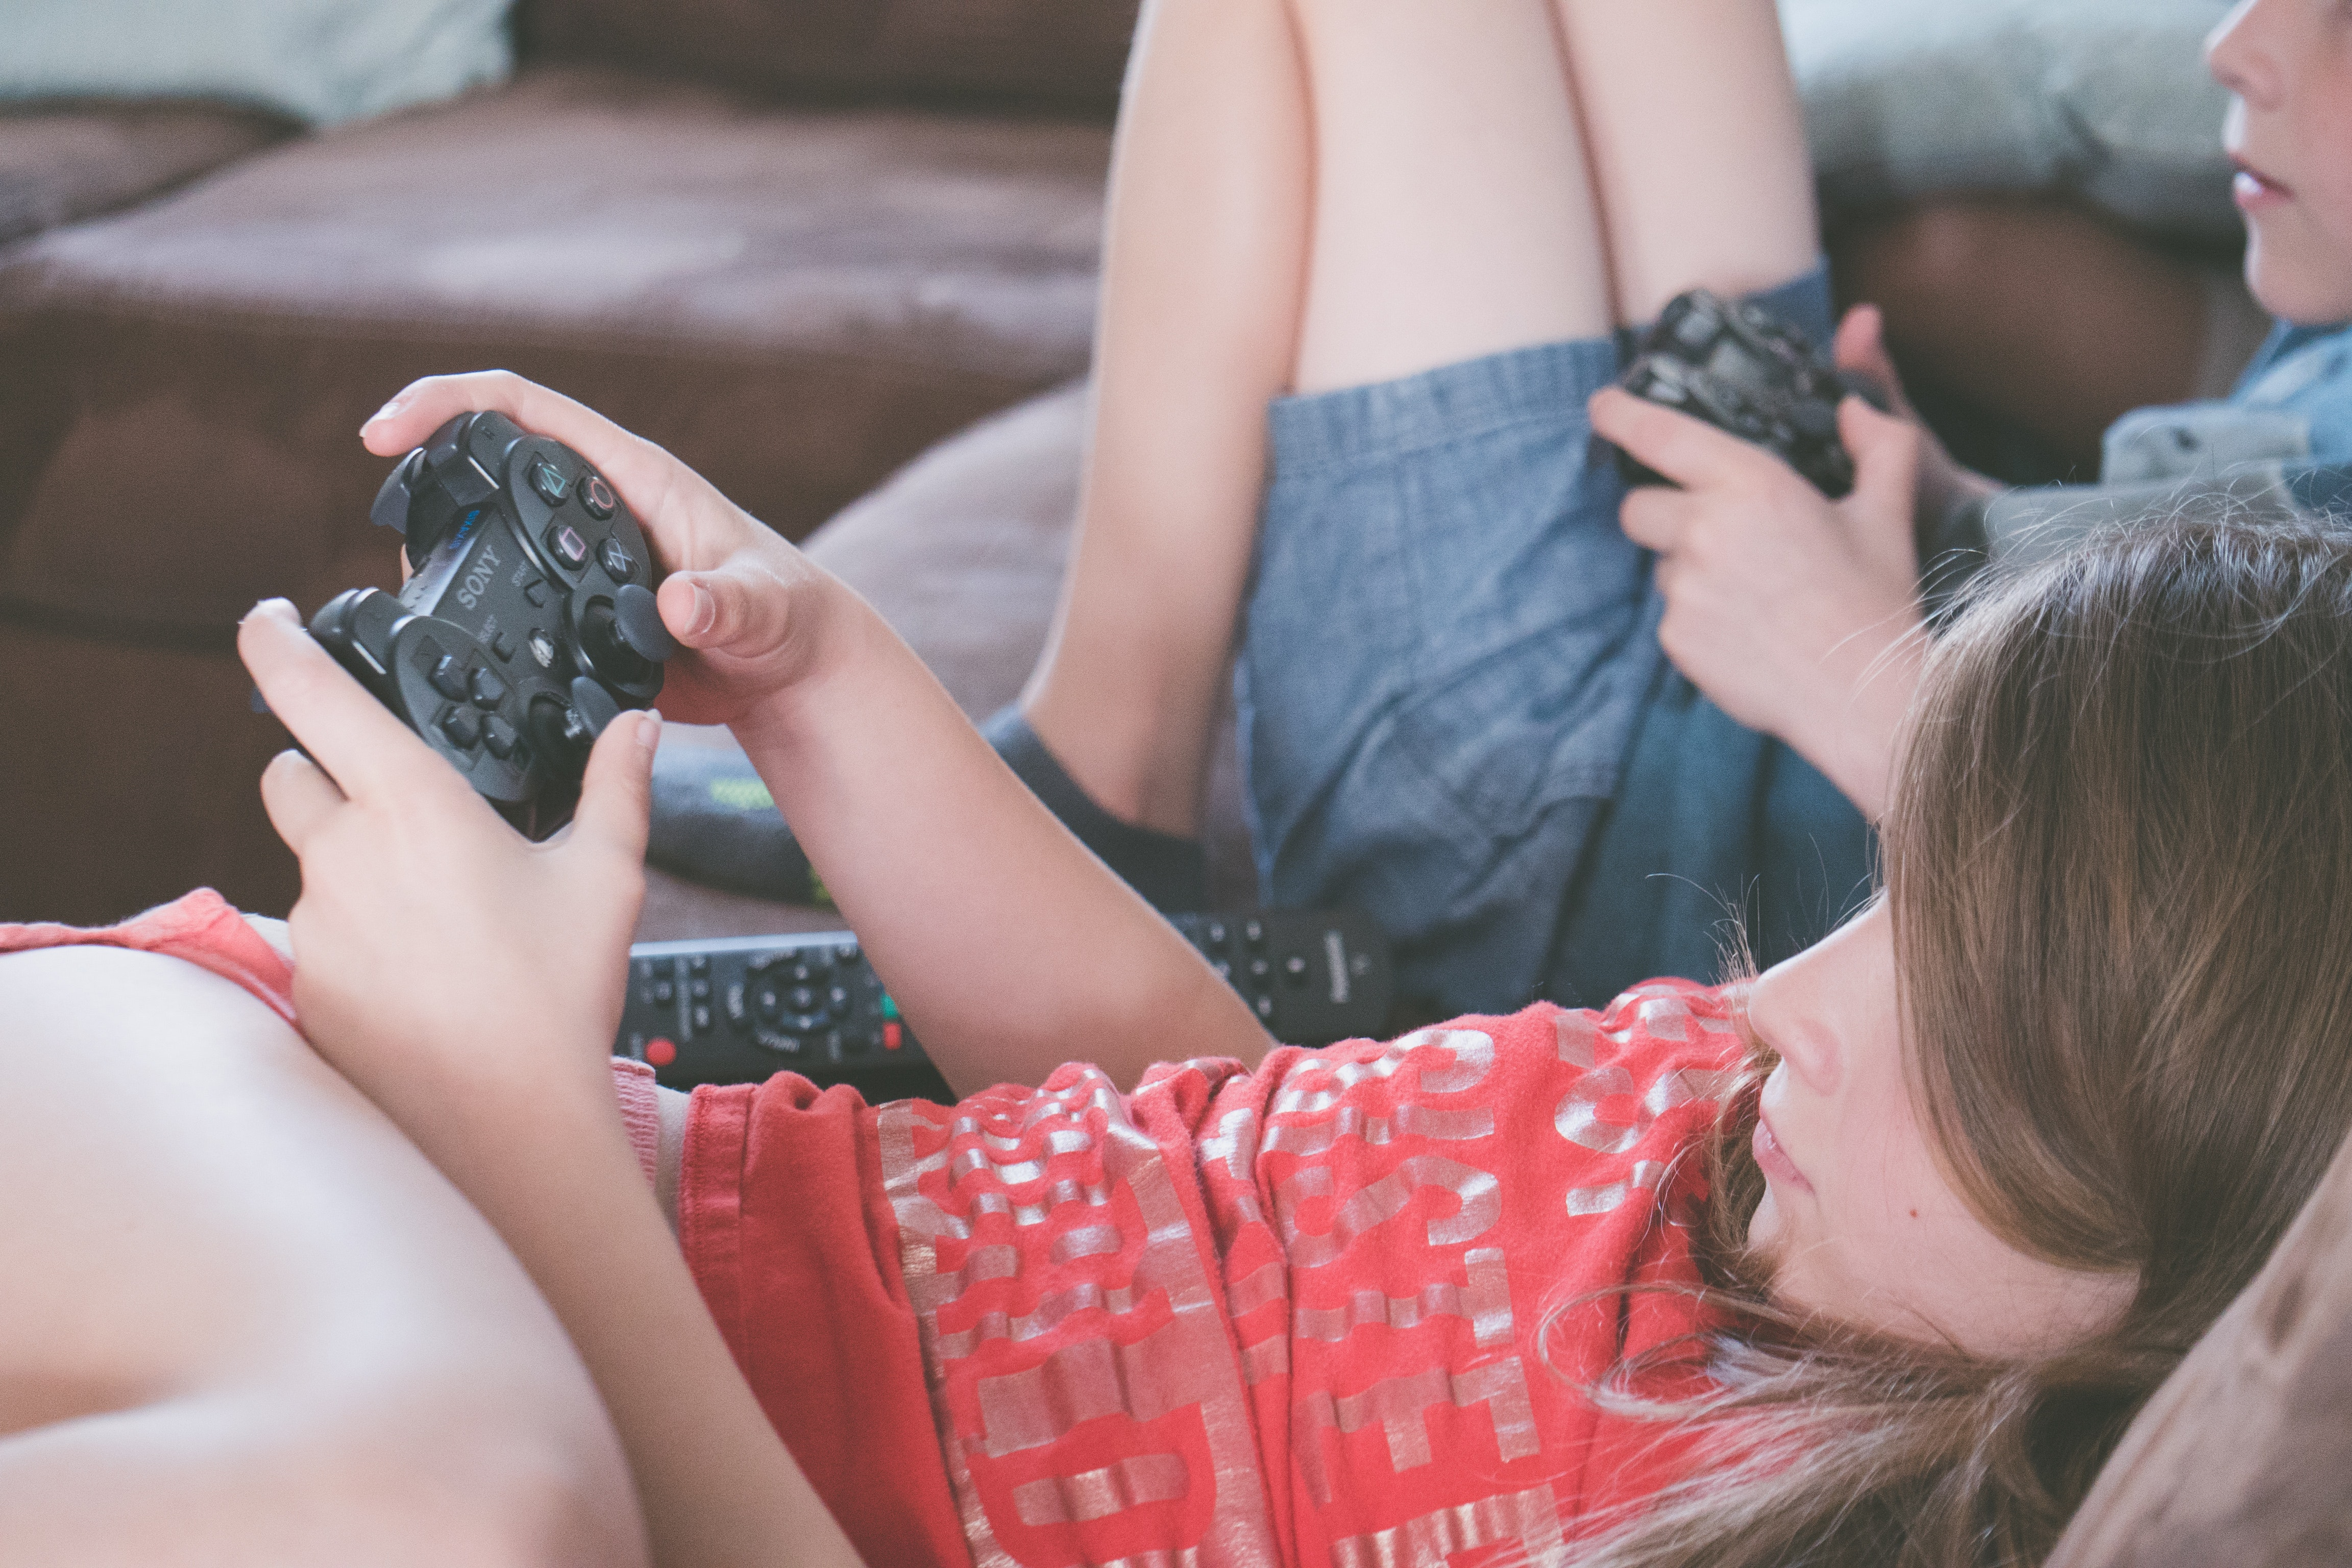 Video games can stunt your child's development